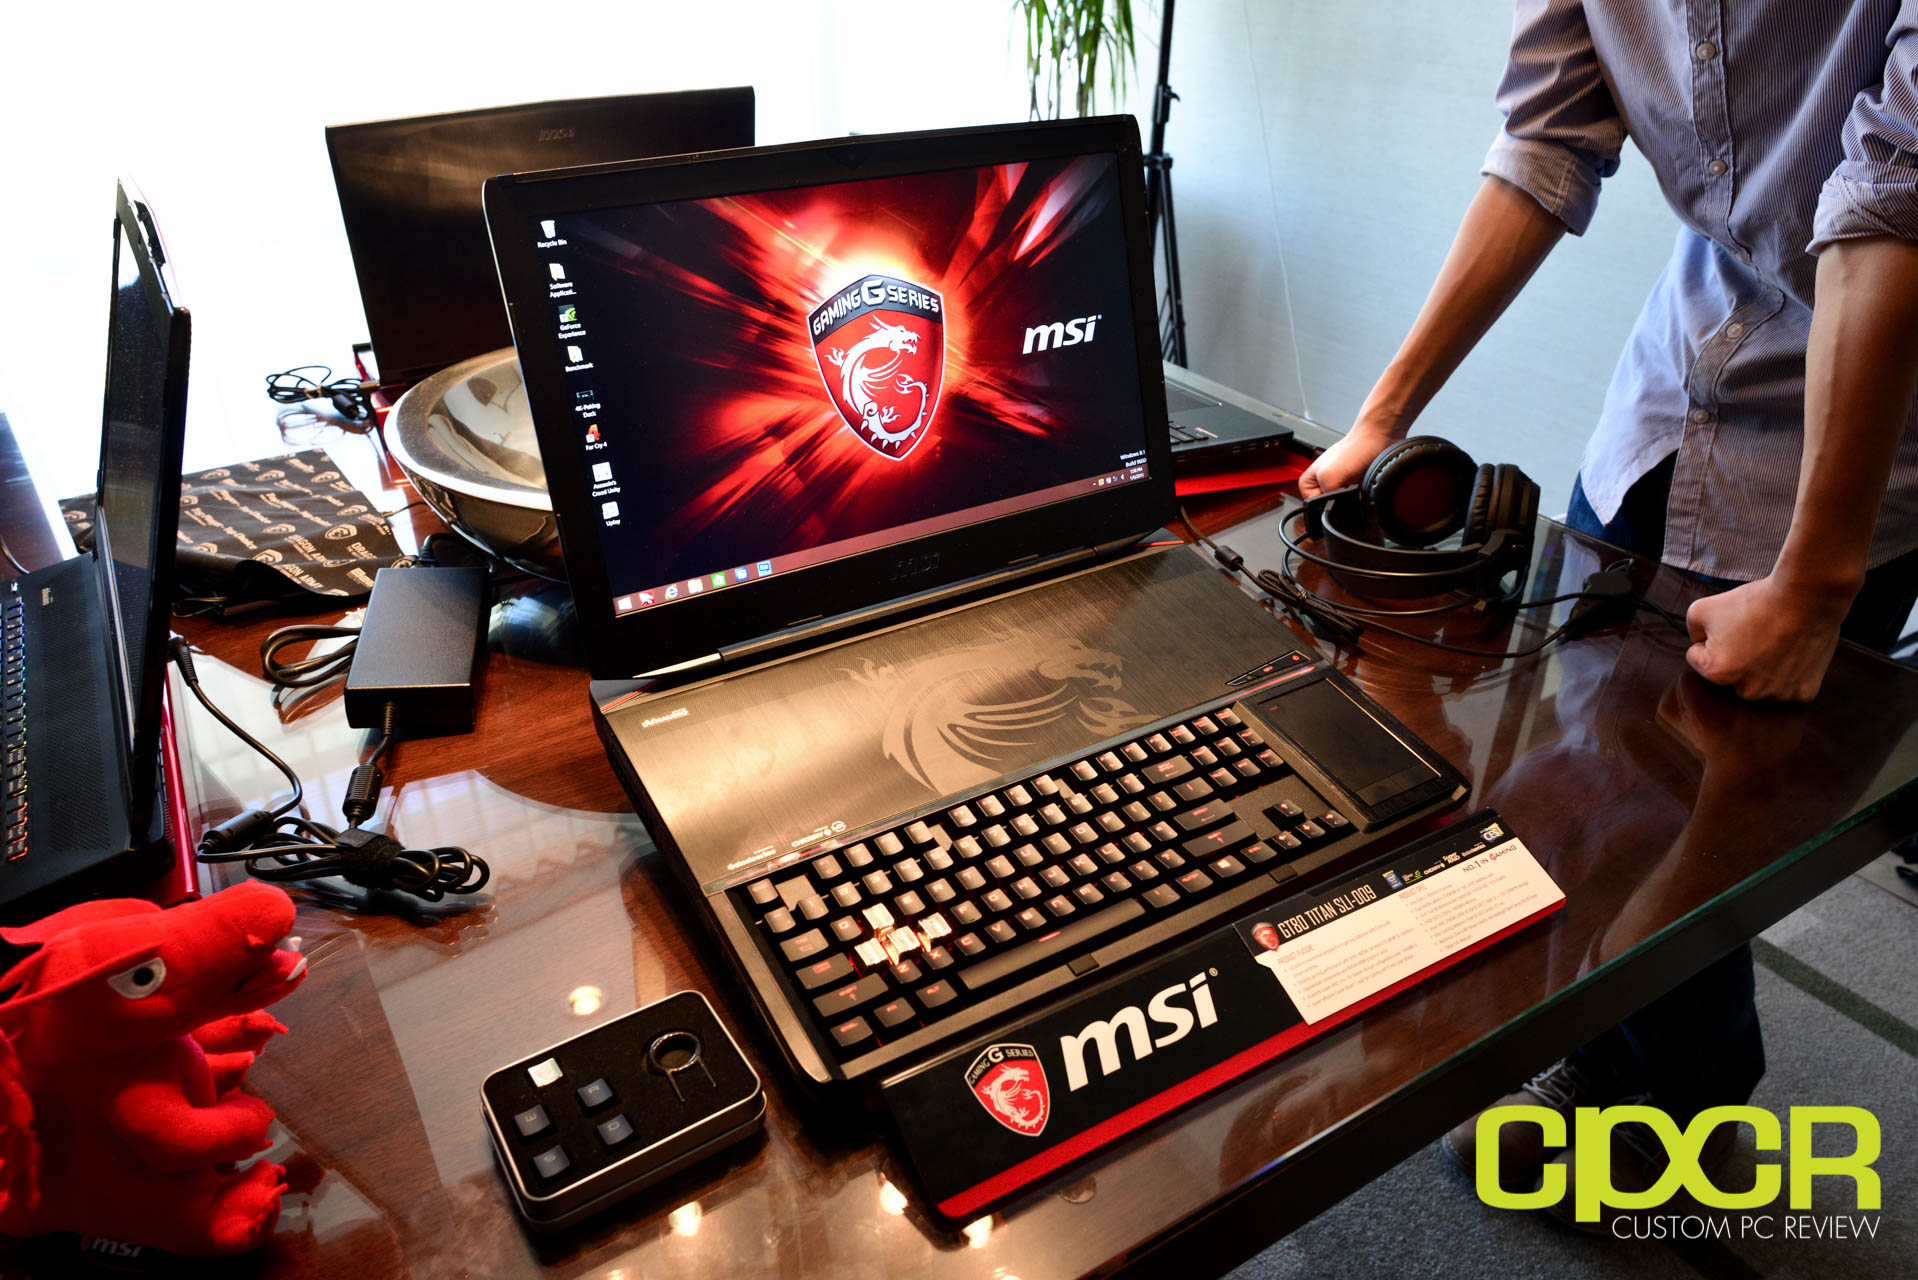 ces 2015 msi gt80 titan sli gaming laptop packs cherry mx brown mechanical switches custom pc. Black Bedroom Furniture Sets. Home Design Ideas